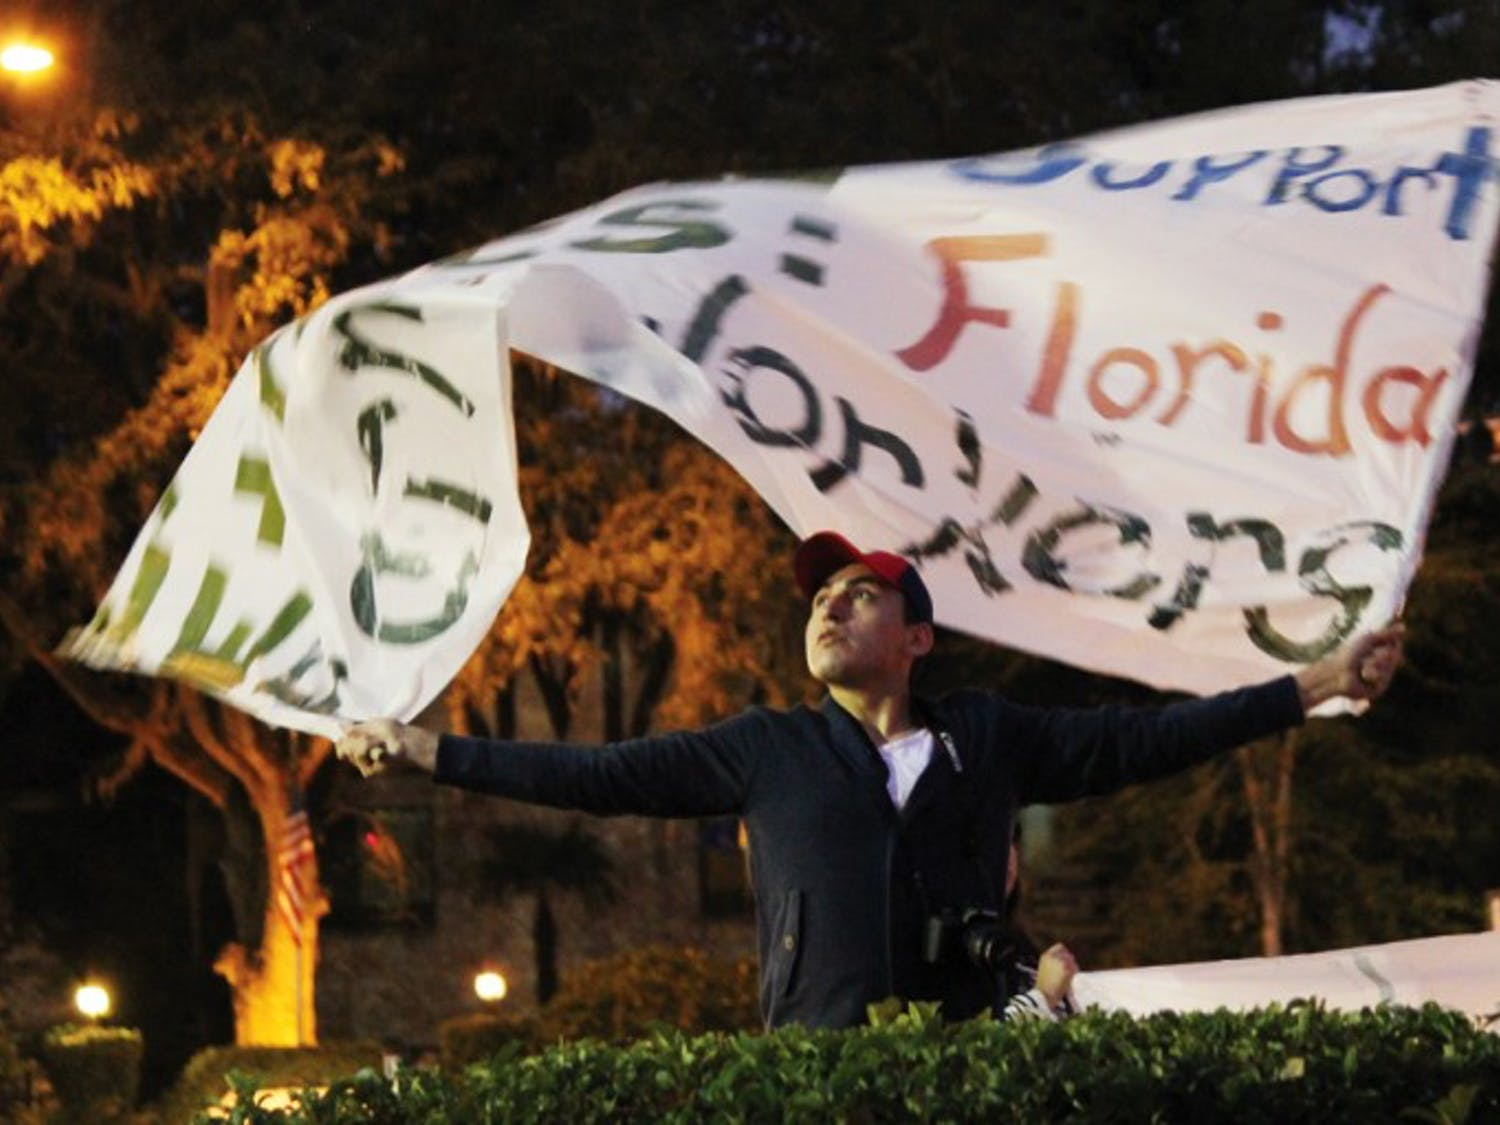 """Julio Mora, a 22-year-old architecture junior, hoists a banner that reads, """"Expand Support Ethics: Florida Farm Workers,"""" at a protest by the Interfaith Alliance for Immigrant Justice group at the Publix on 34th Street and University Avenue Monday night."""